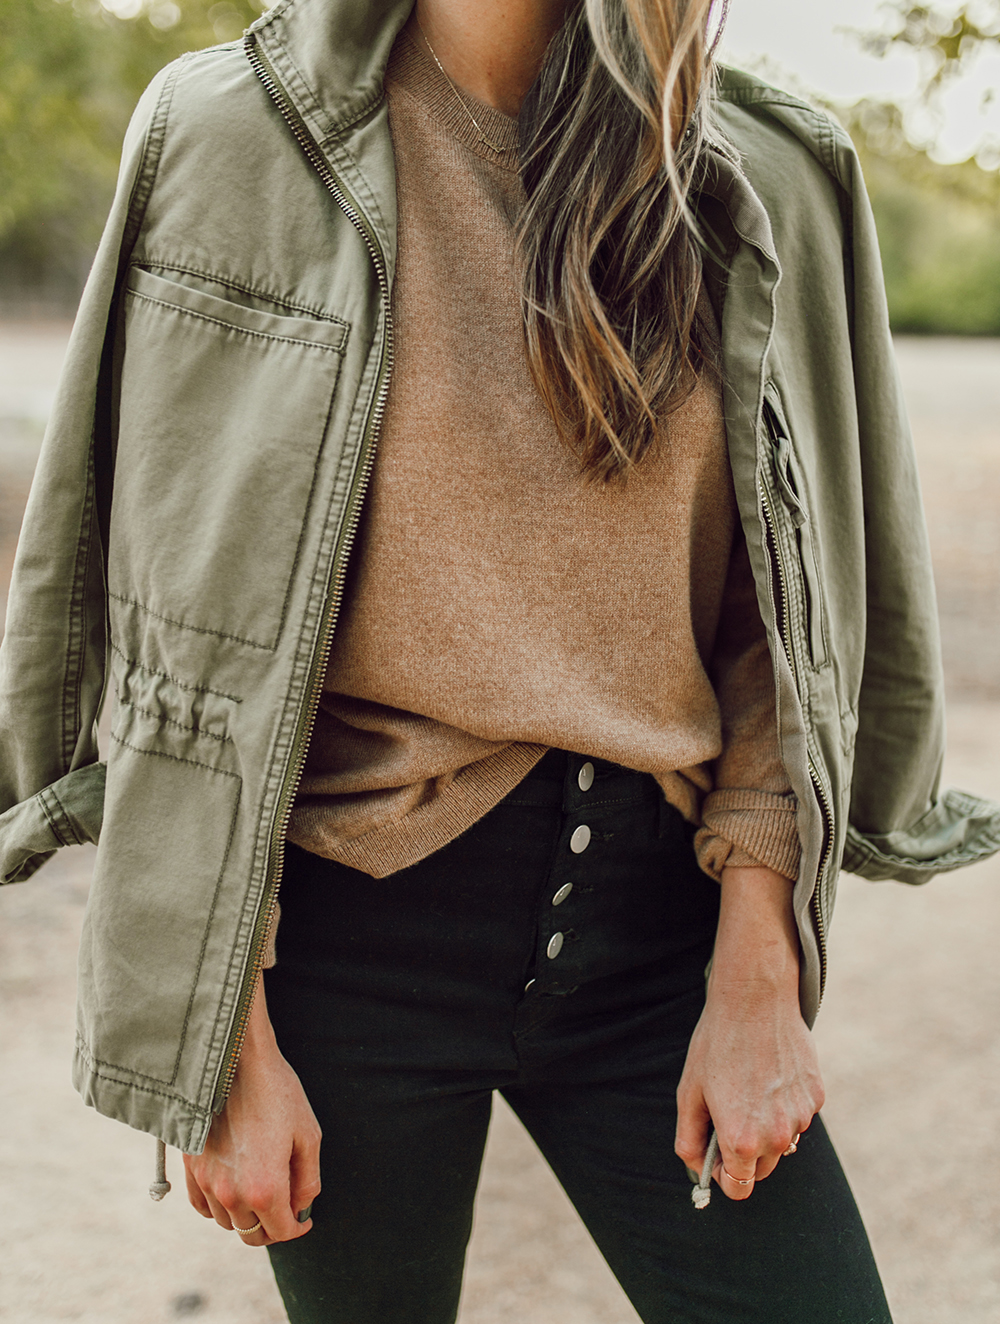 livvyland-blog-olivia-watson-austin-texas-lifestyle-fashion-blogger-sperry-saltwater-duck-boots-outfit-idea-fall-style-1